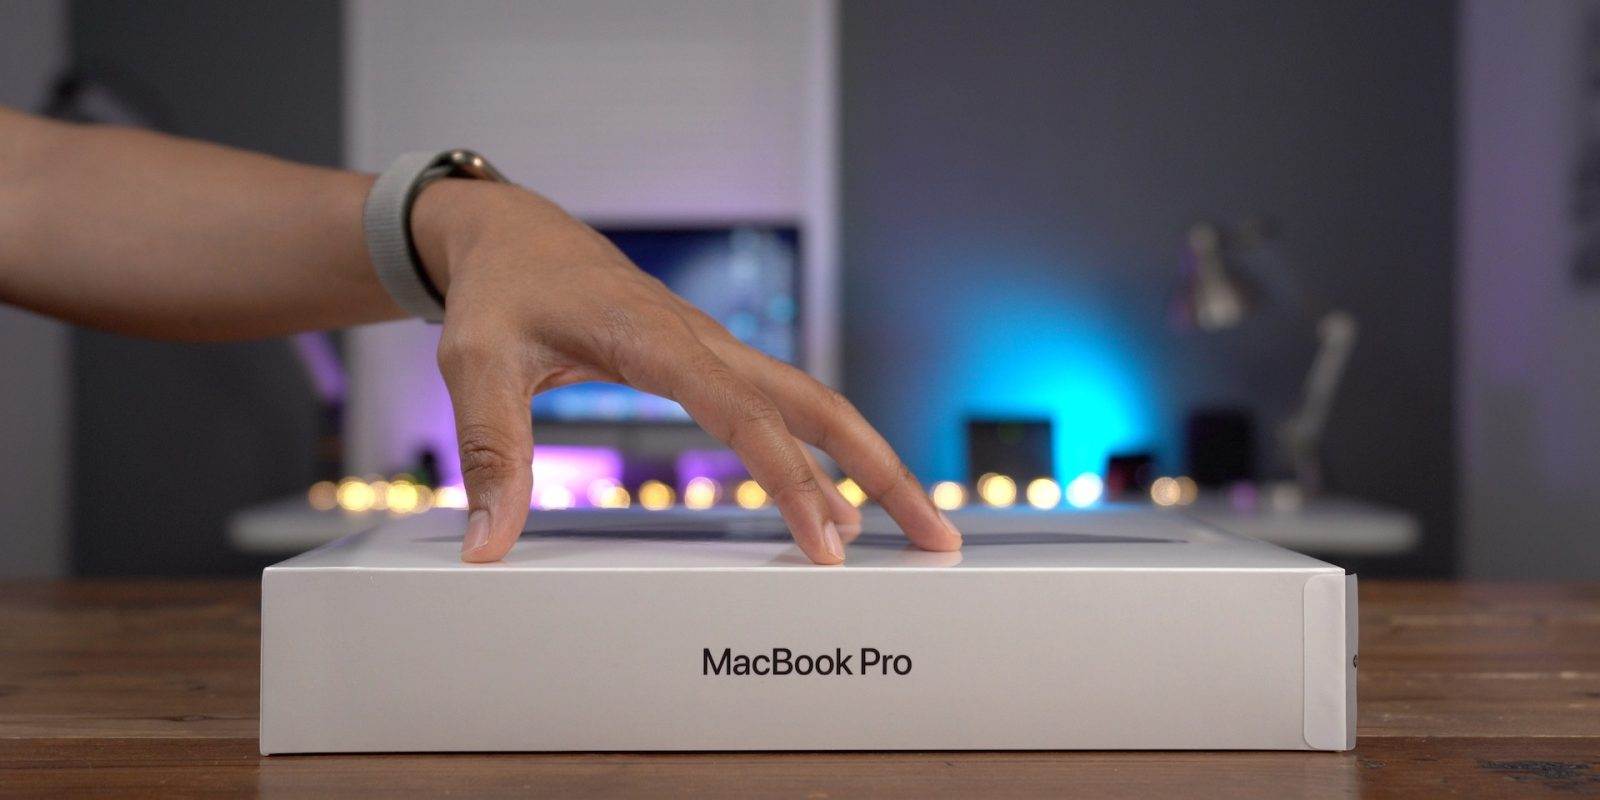 16-inch MacBook Pro rumored to launch in October with ~$3000 starting price